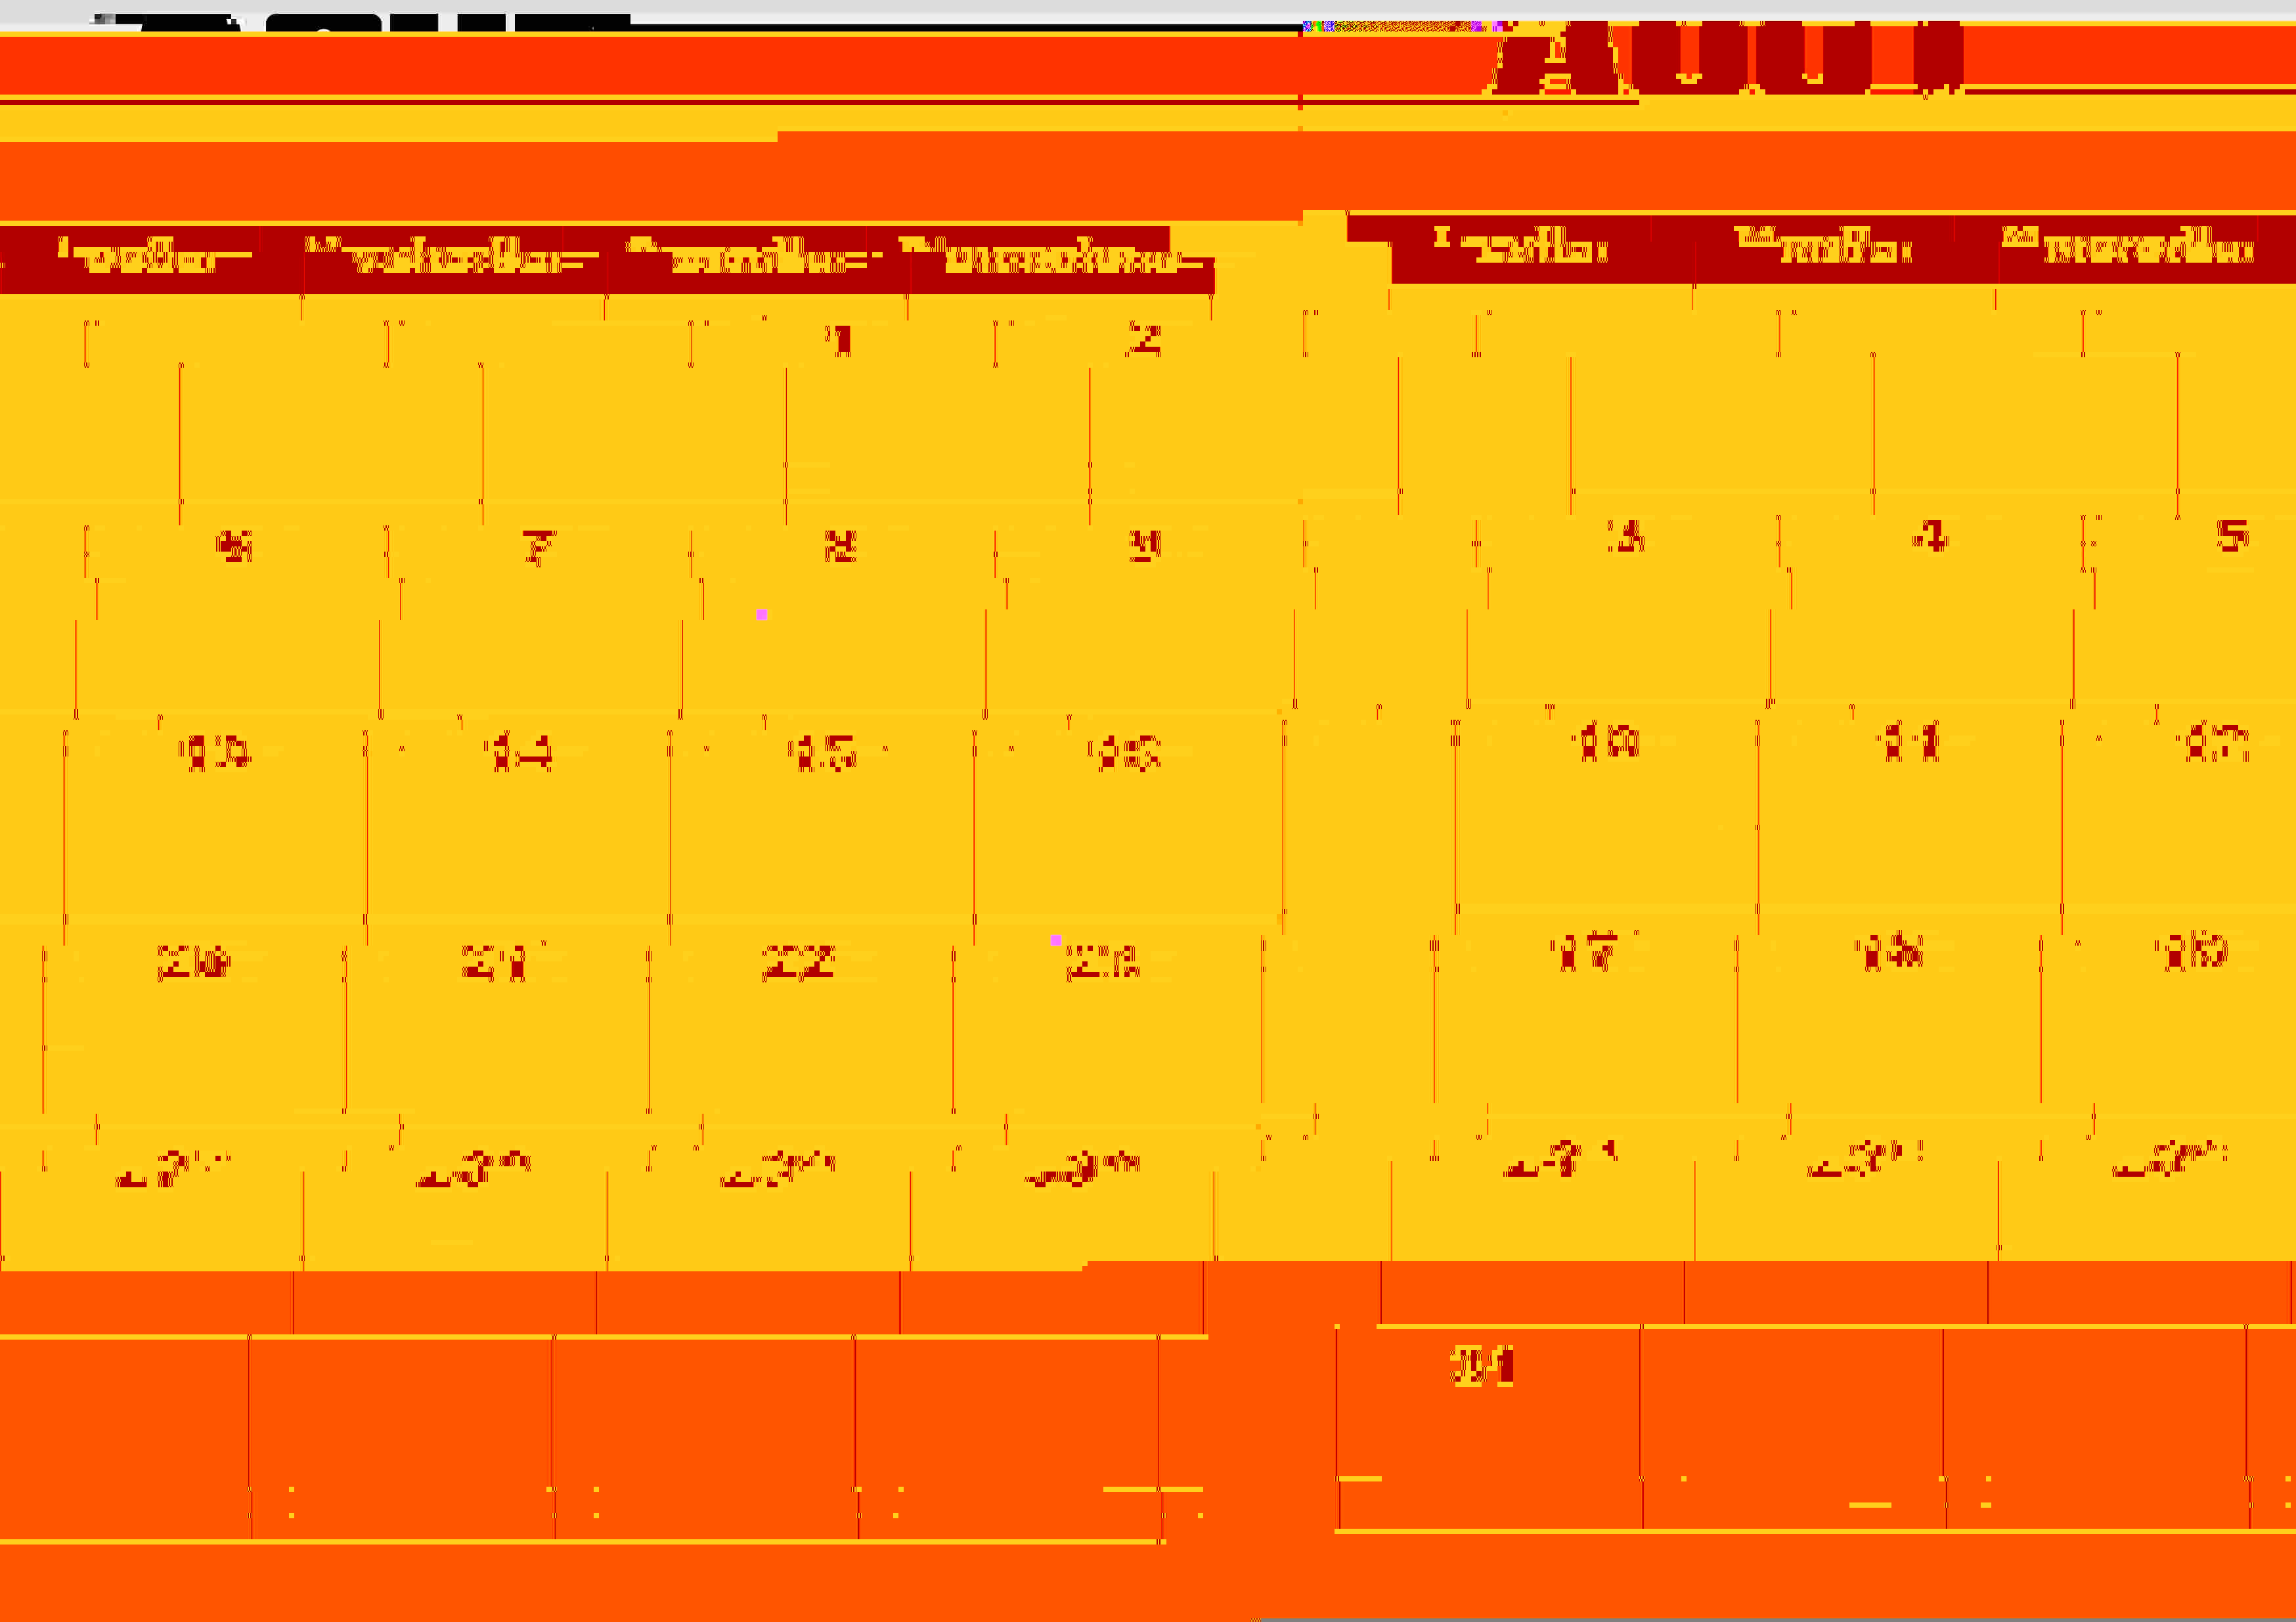 http://jkp.antisocial.be/Calendrier-2015/Aout.png